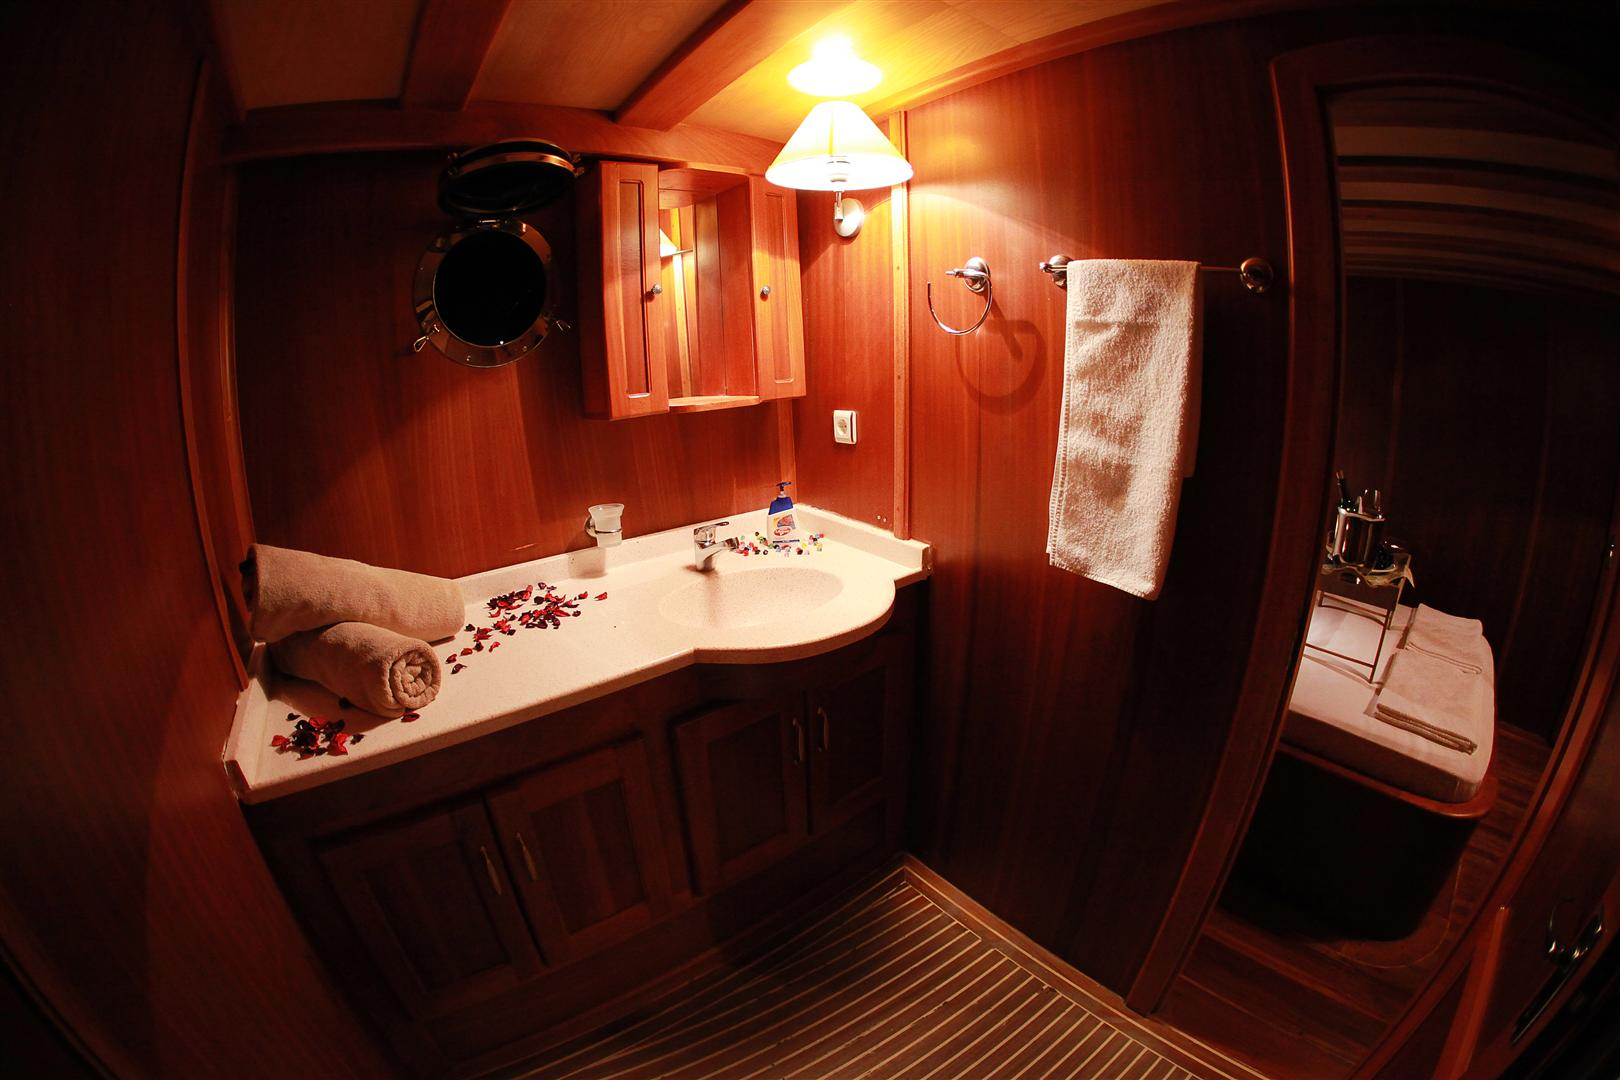 j.orcun double cabin bathroom view.JPG